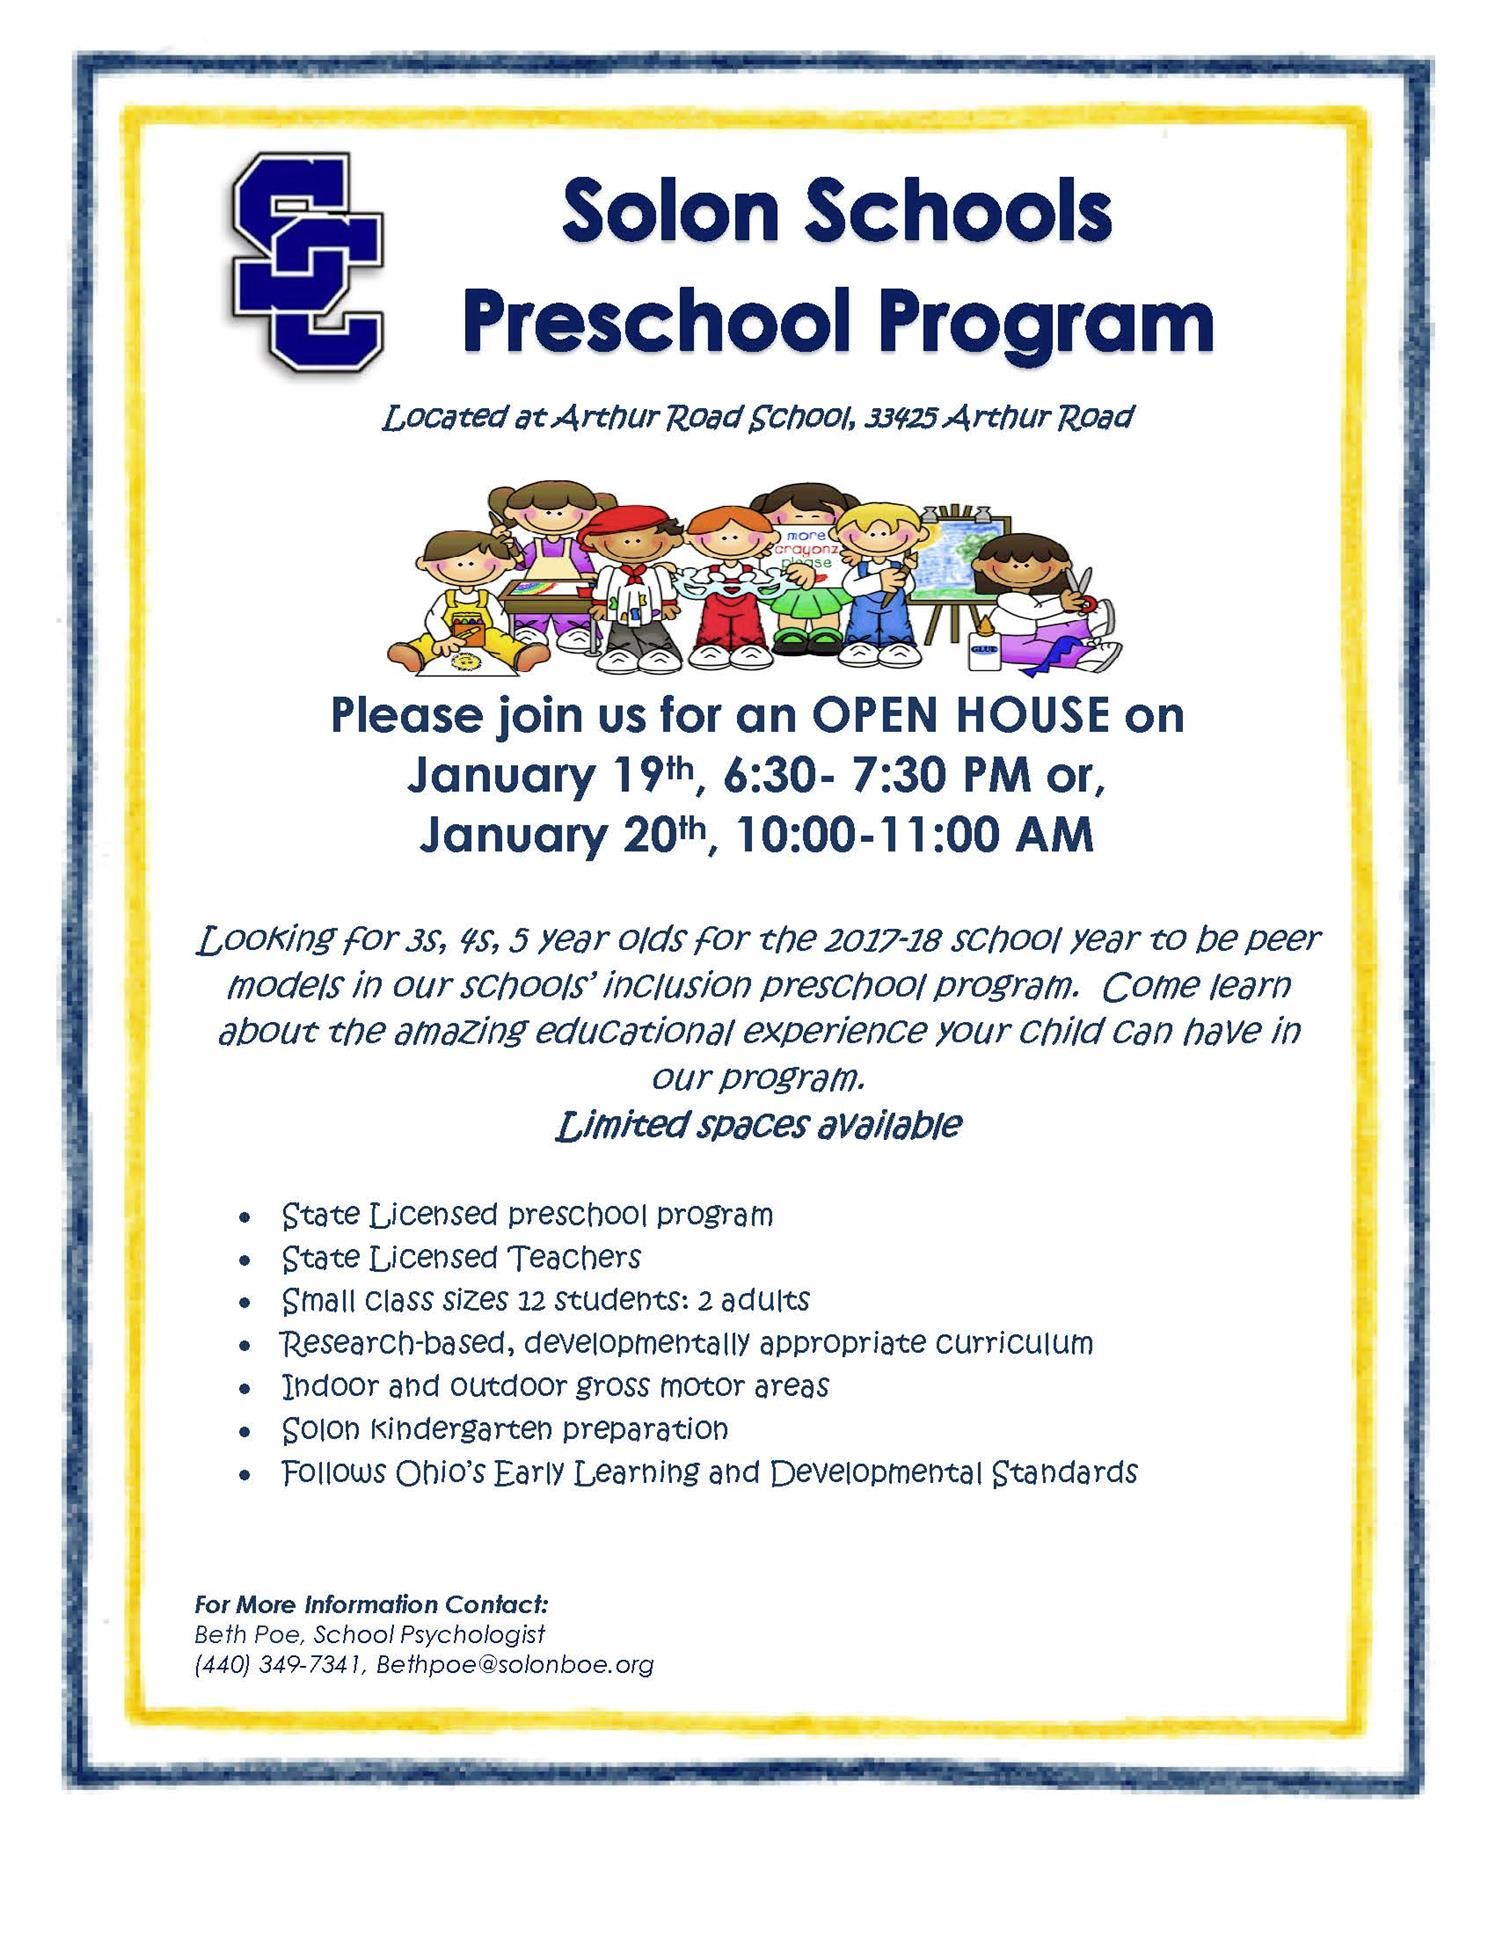 Preschool Peer Model flier 2017-18